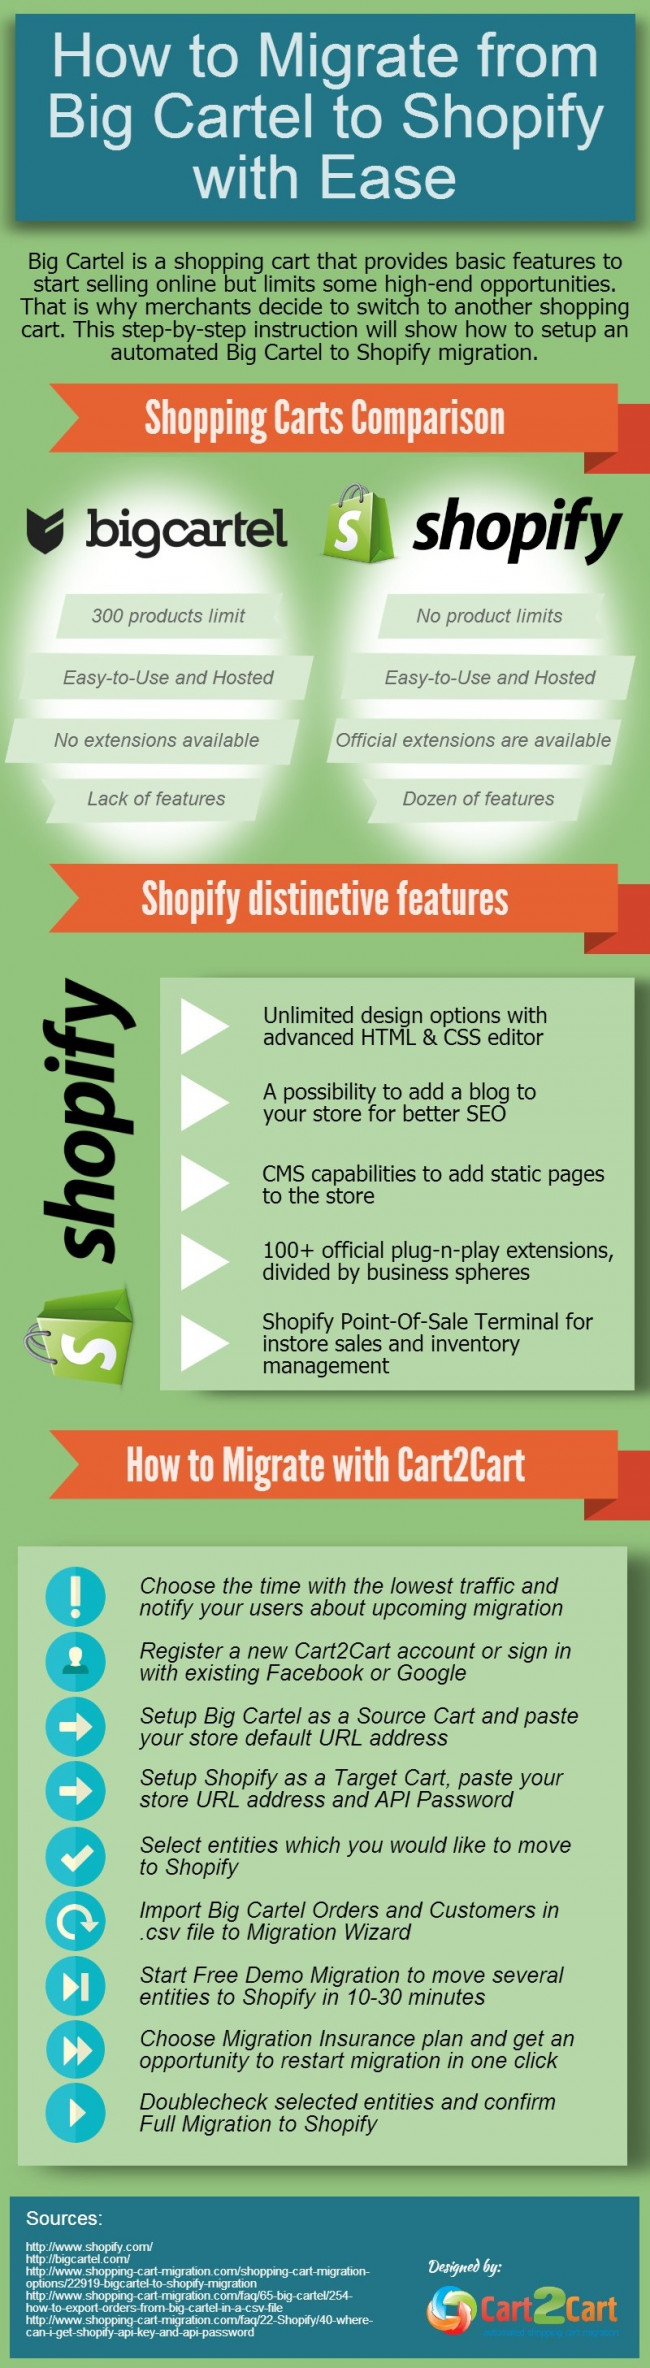 How to Migrate from Big Cartel to Shopify with Ease